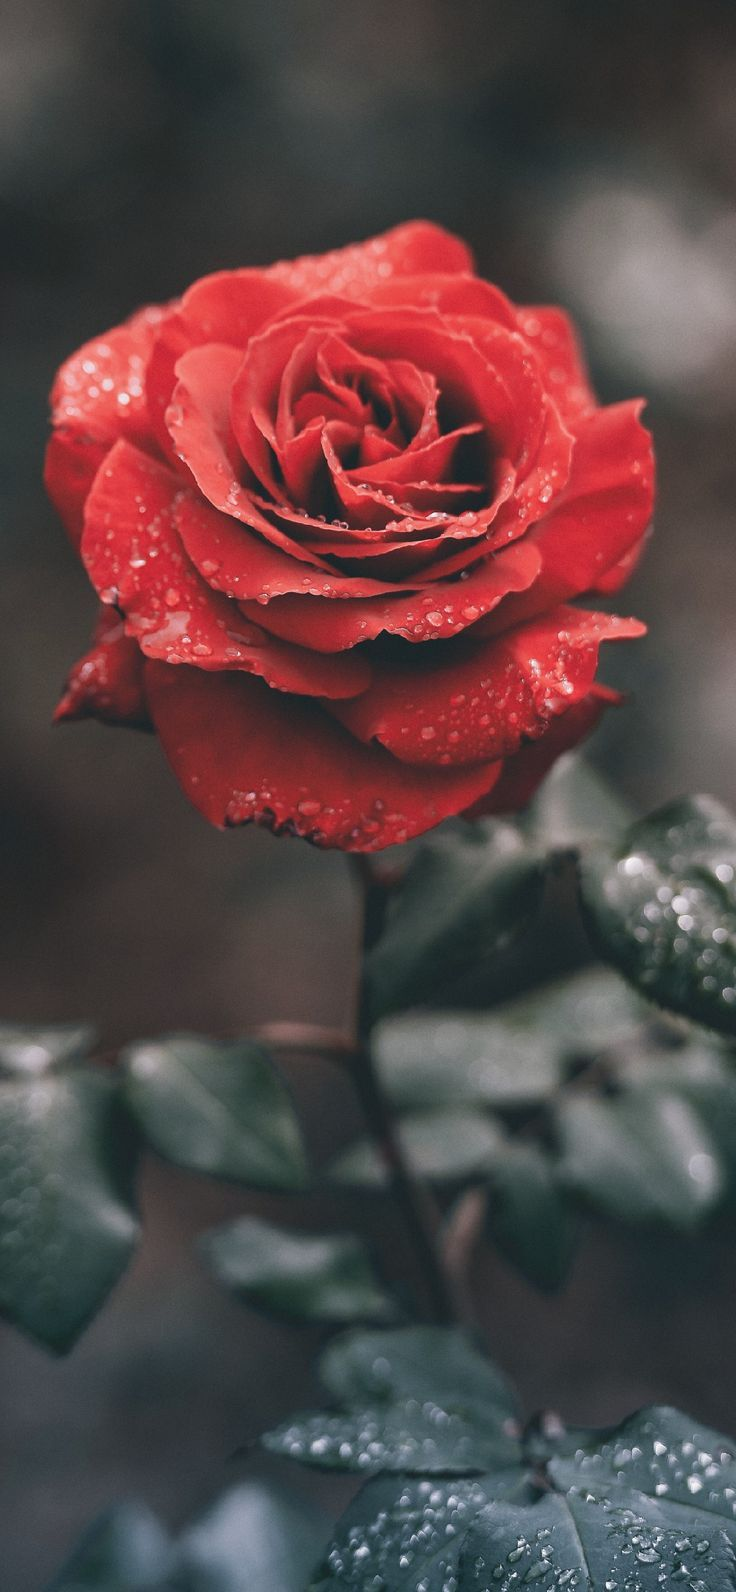 Dew On The Rose Phone Wallpaper Lockscreen Hd 4k Android Ios From A General Summary To Chapter Summ Wallpaper Iphone Roses Rose Wallpaper Red Roses Wallpaper